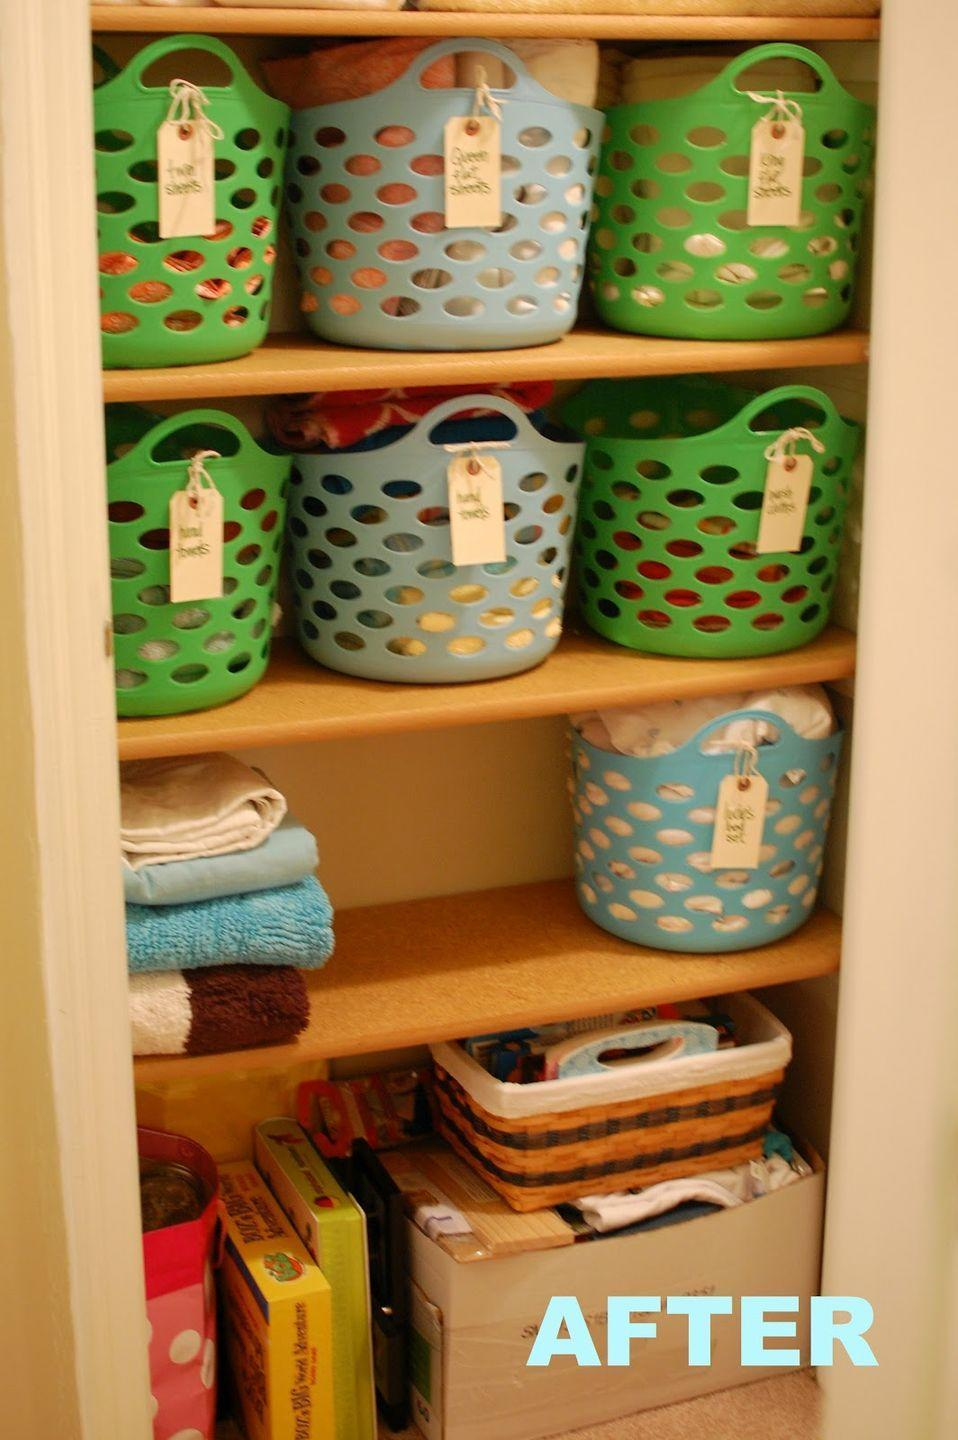 """<p>All you need to do to make your life way easier is invest in a few plastic baskets. Here, labels on the handle make it clear where twin sheets versus king sheets are stored.</p><p><em><a href=""""http://abirdandabean.com/2012/03/10-linen-closet-redo.html"""" rel=""""nofollow noopener"""" target=""""_blank"""" data-ylk=""""slk:See more at A Bird and a Bean »"""" class=""""link rapid-noclick-resp"""">See more at A Bird and a Bean »</a></em></p><p><strong>What you'll need: </strong><span class=""""redactor-invisible-space"""">colorful bins, $3, <a href=""""https://www.amazon.com/Wa-Desktop-storage-Colorful-Organizer/dp/B073B1SMQT/?tag=syn-yahoo-20&ascsubtag=%5Bartid%7C10072.g.36006557%5Bsrc%7Cyahoo-us"""" rel=""""nofollow noopener"""" target=""""_blank"""" data-ylk=""""slk:amazon.com"""" class=""""link rapid-noclick-resp"""">amazon.com</a></span><br></p>"""